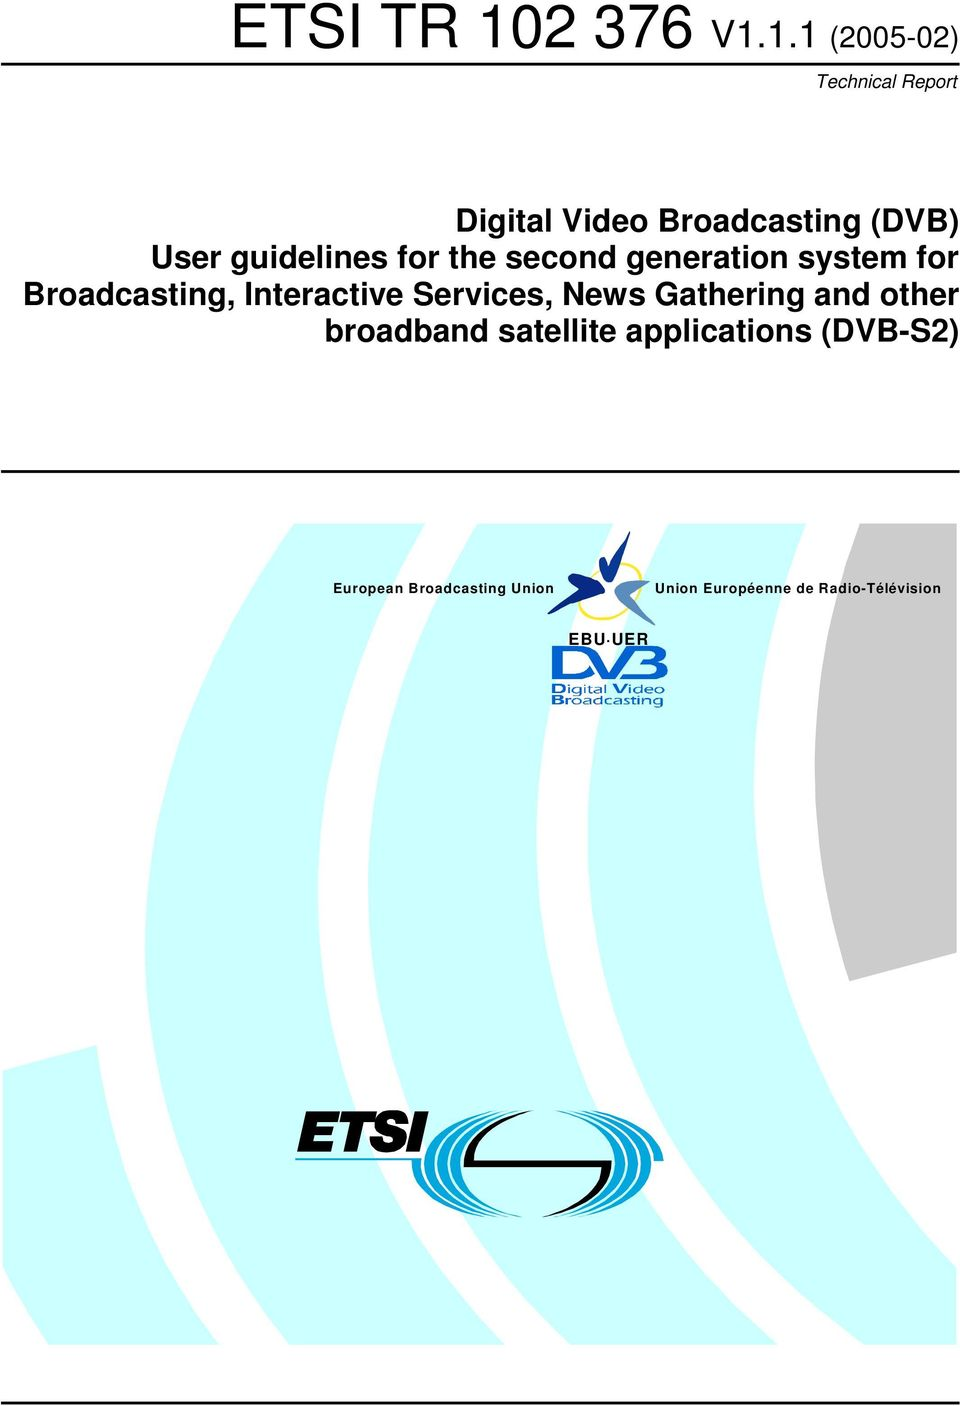 Interactive Services, News Gathering and other broadband satellite